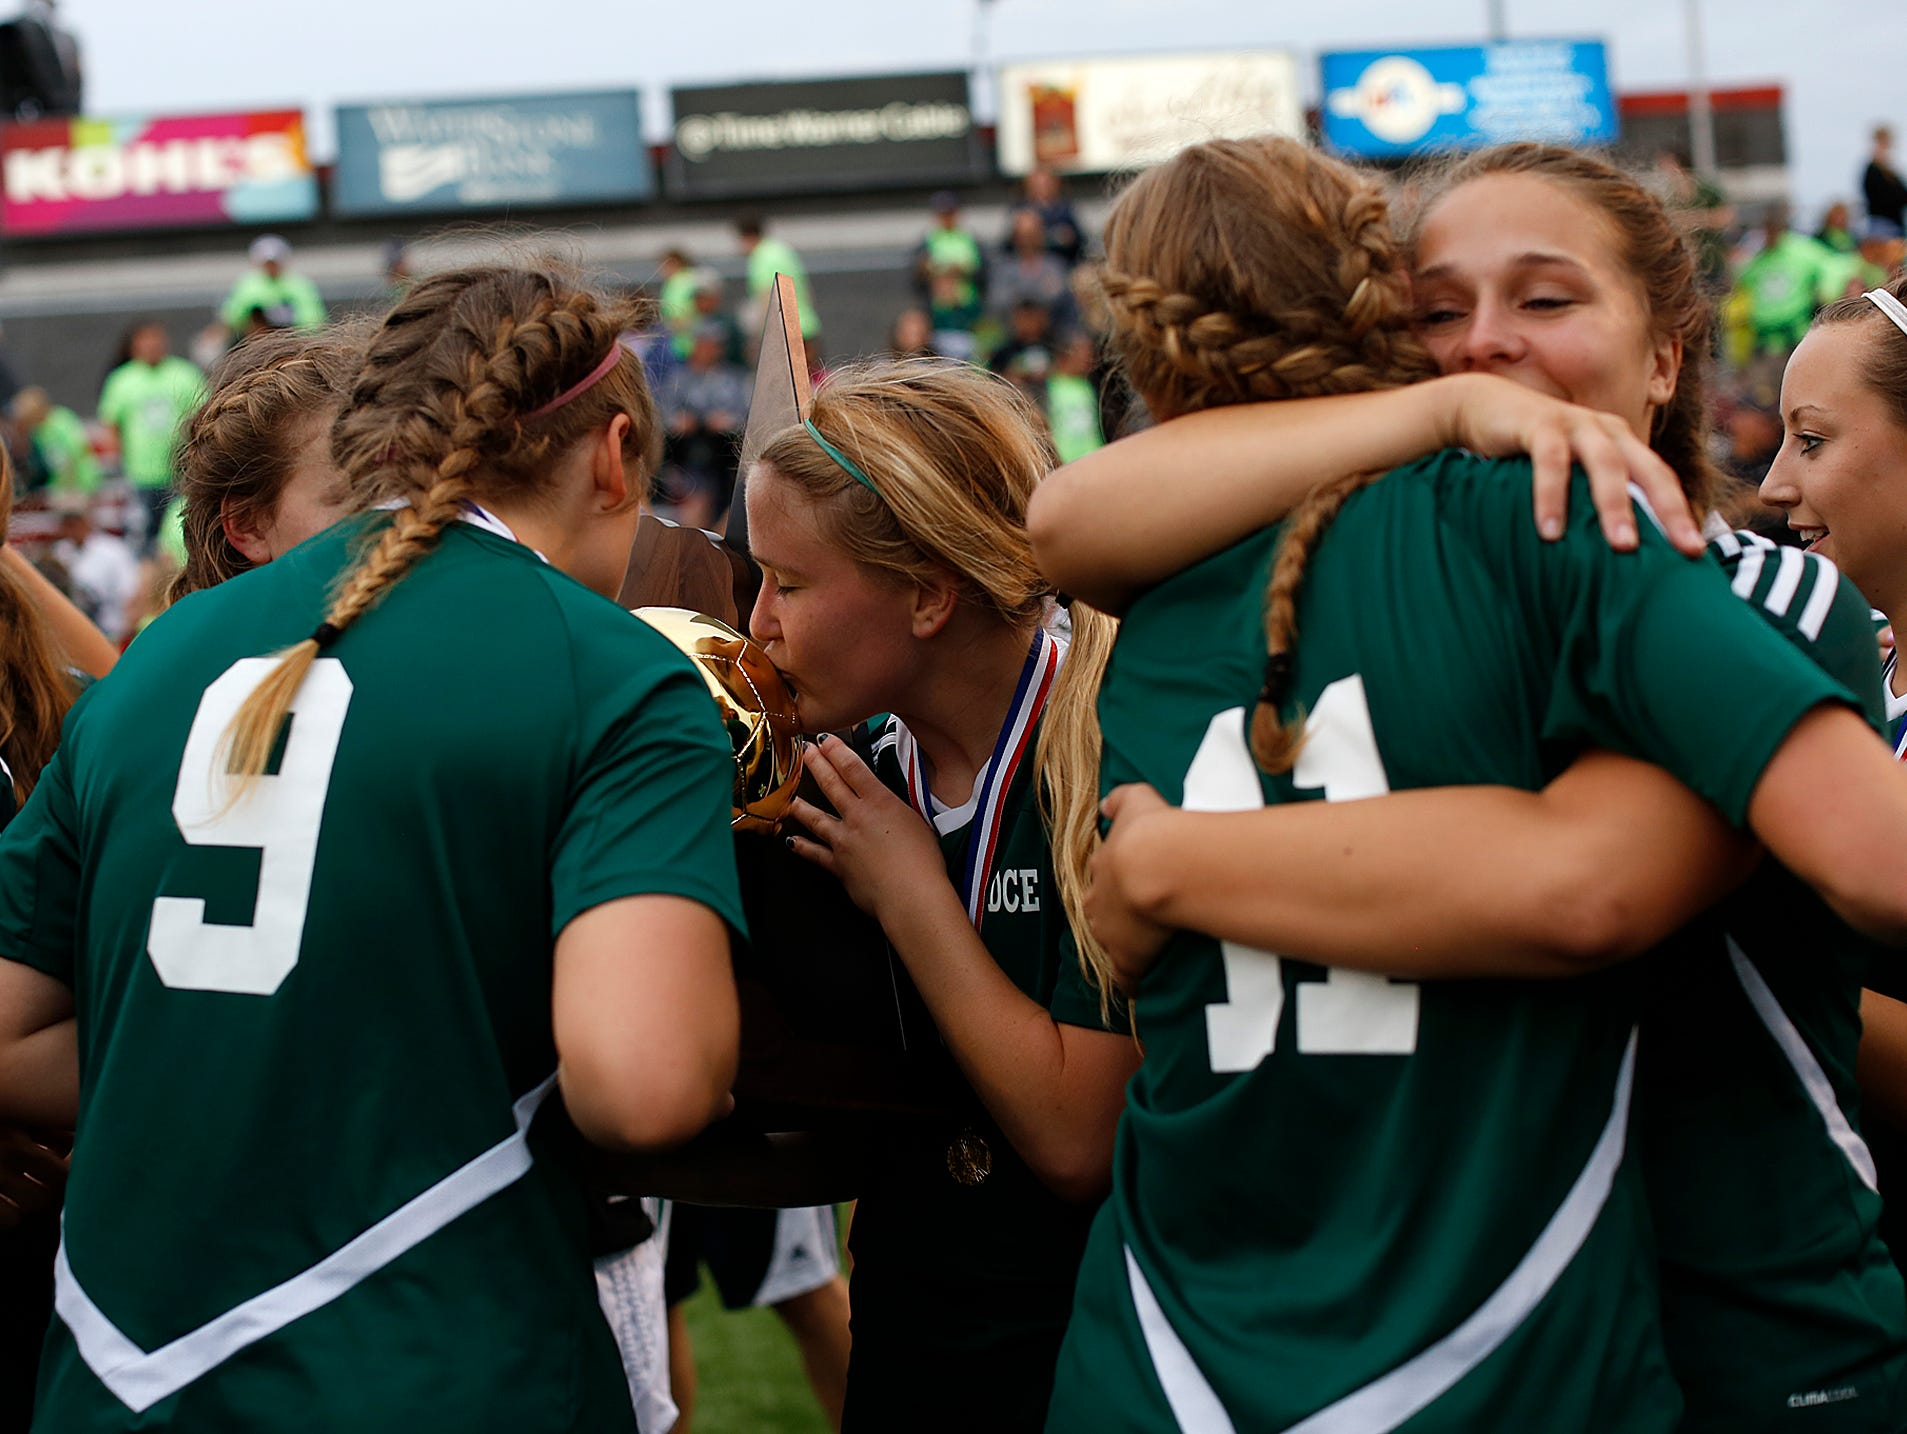 D.C. Everest players celebrate with the championship trophy after the Evergreens defeated Kettle Moraine in overtime during Saturday's Division 1 championship game in the WIAA state girls soccer tournament at Uihlein Soccer Park in Milwaukee.